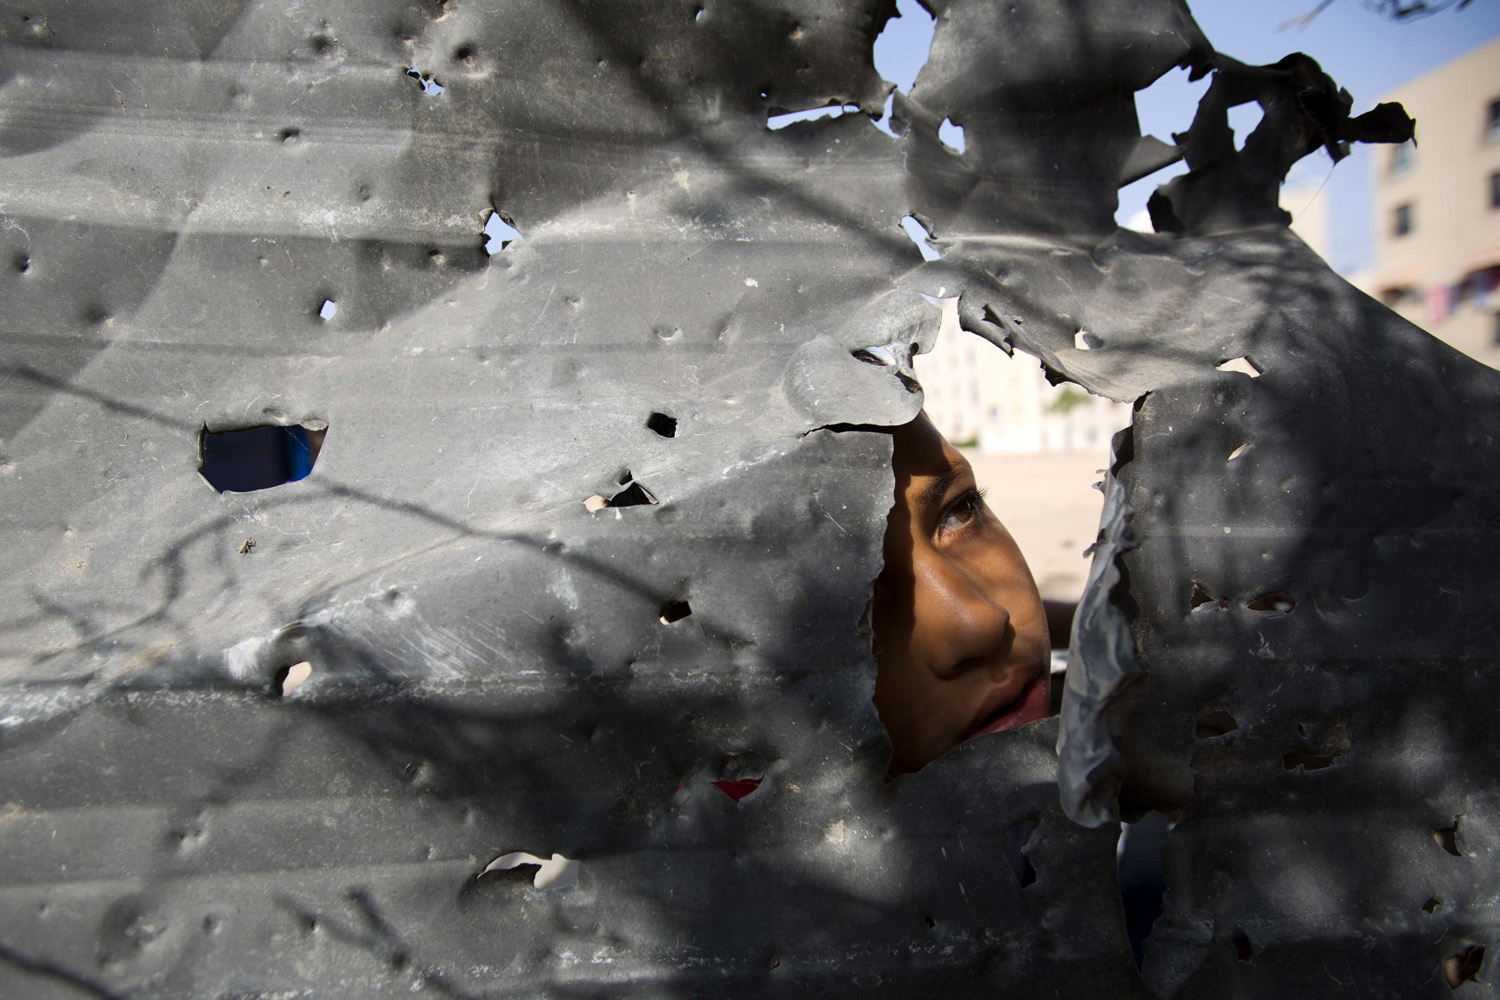 Jun. 19, 2014. A Palestinian boy peers from behind a shrapnel riddled metal piece following an Israeli air strike in the Gaza Strip's northern Beit Lahia town.